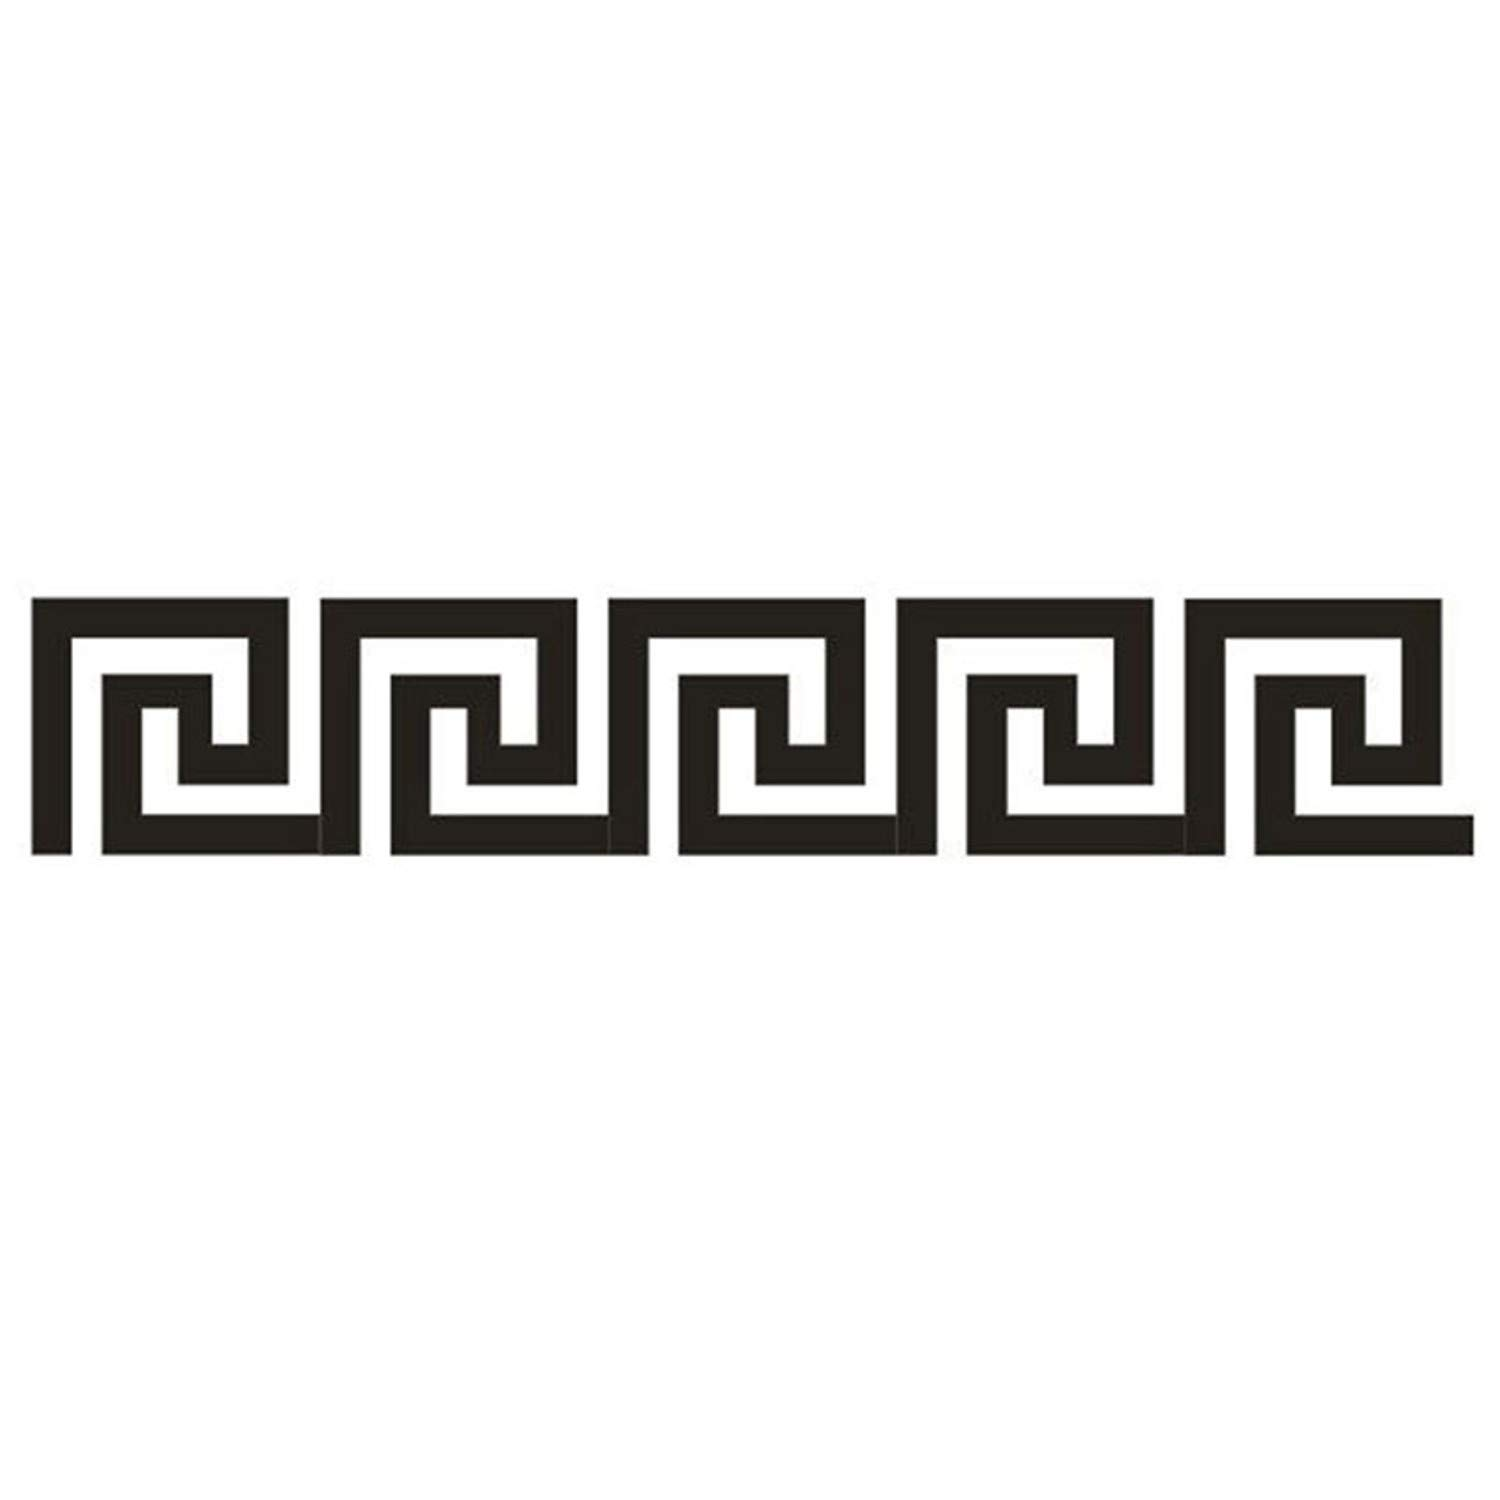 Amazon.com: Chitop (10 Pcs Home Decor Puzzle Labyrinth Acrylic Mirror Wall Decal - Best Art Stickers Decals (Black): Home & Kitchen